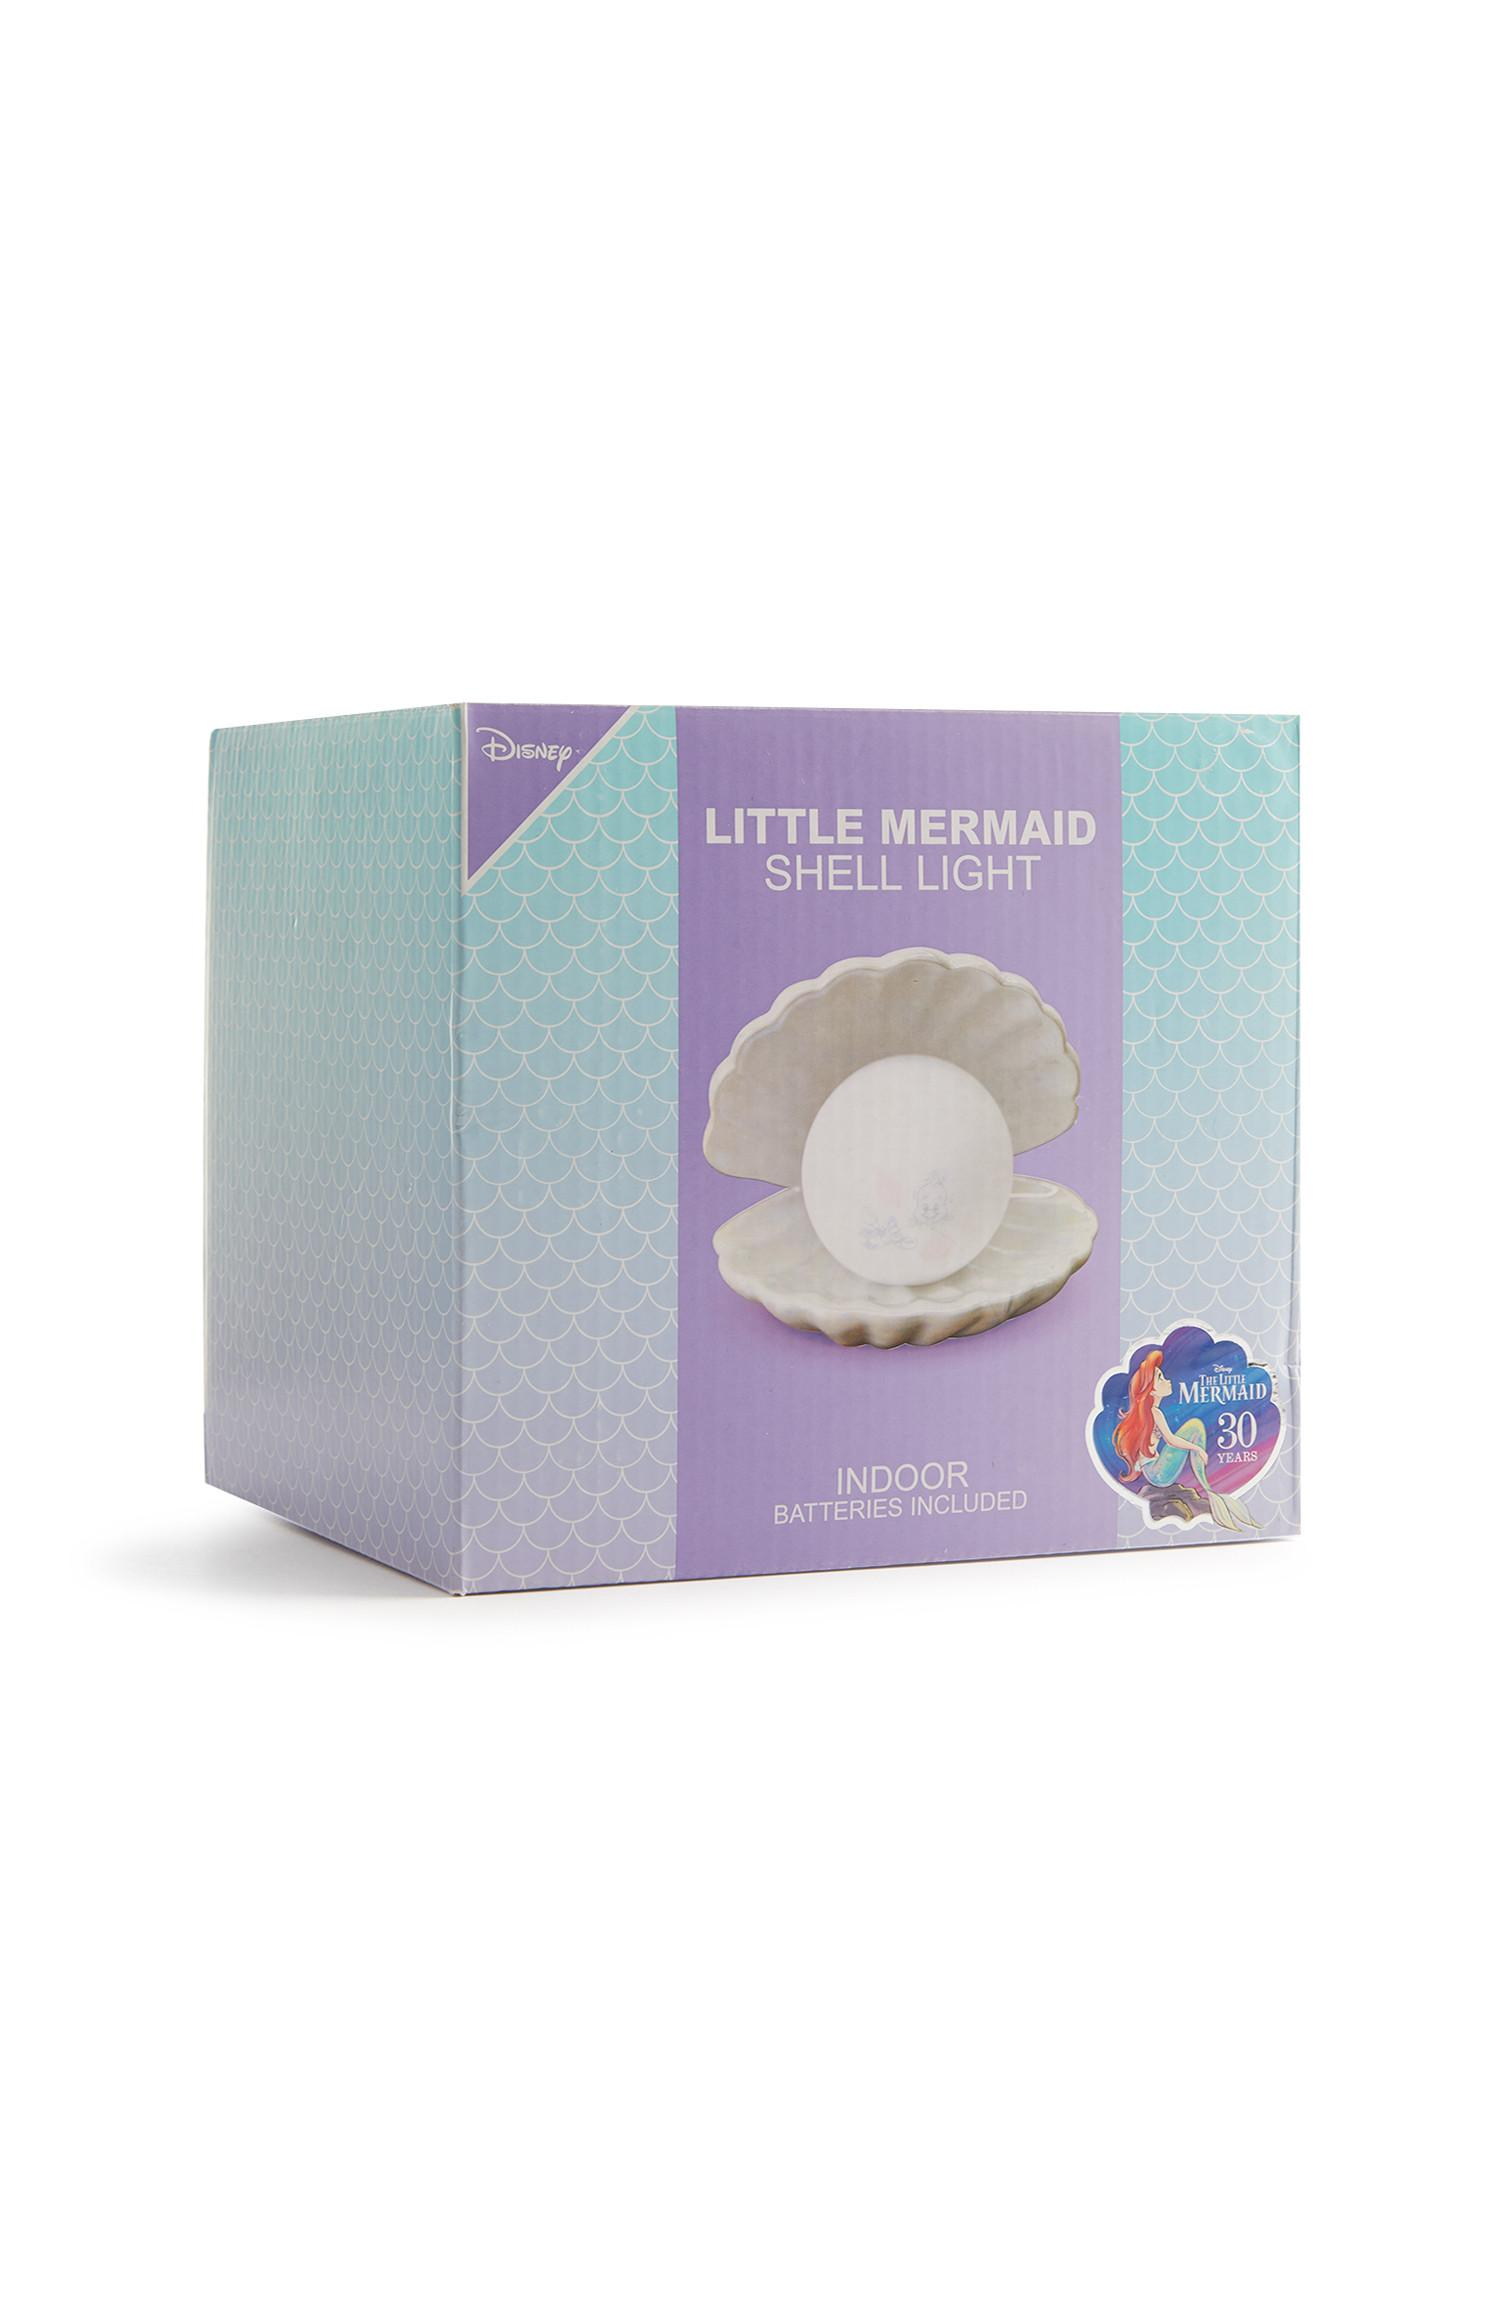 Little Mermaid Shell Light